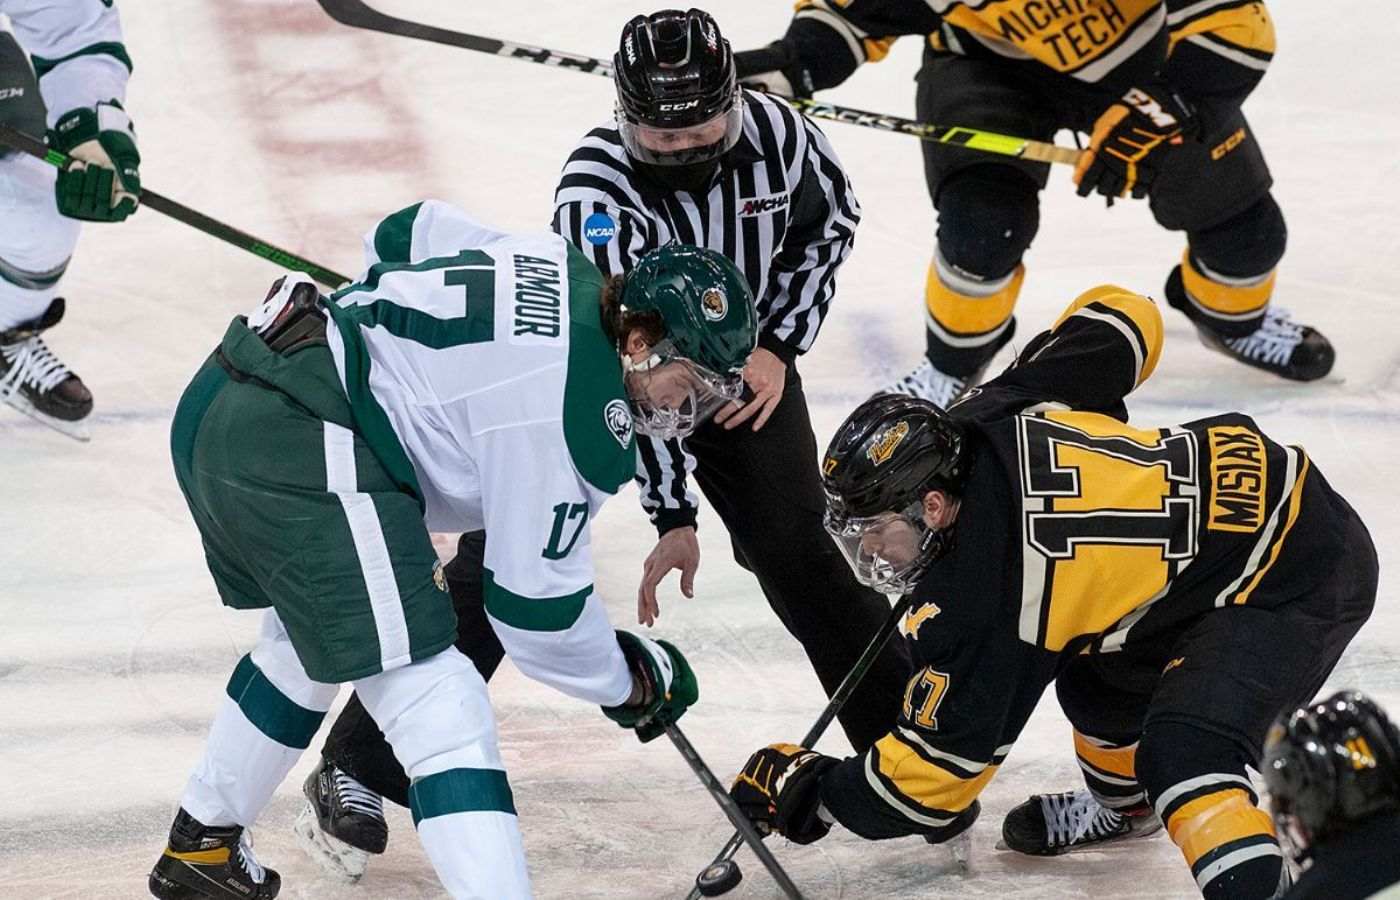 Bemidji State set for WCHA clash at Michigan Tech